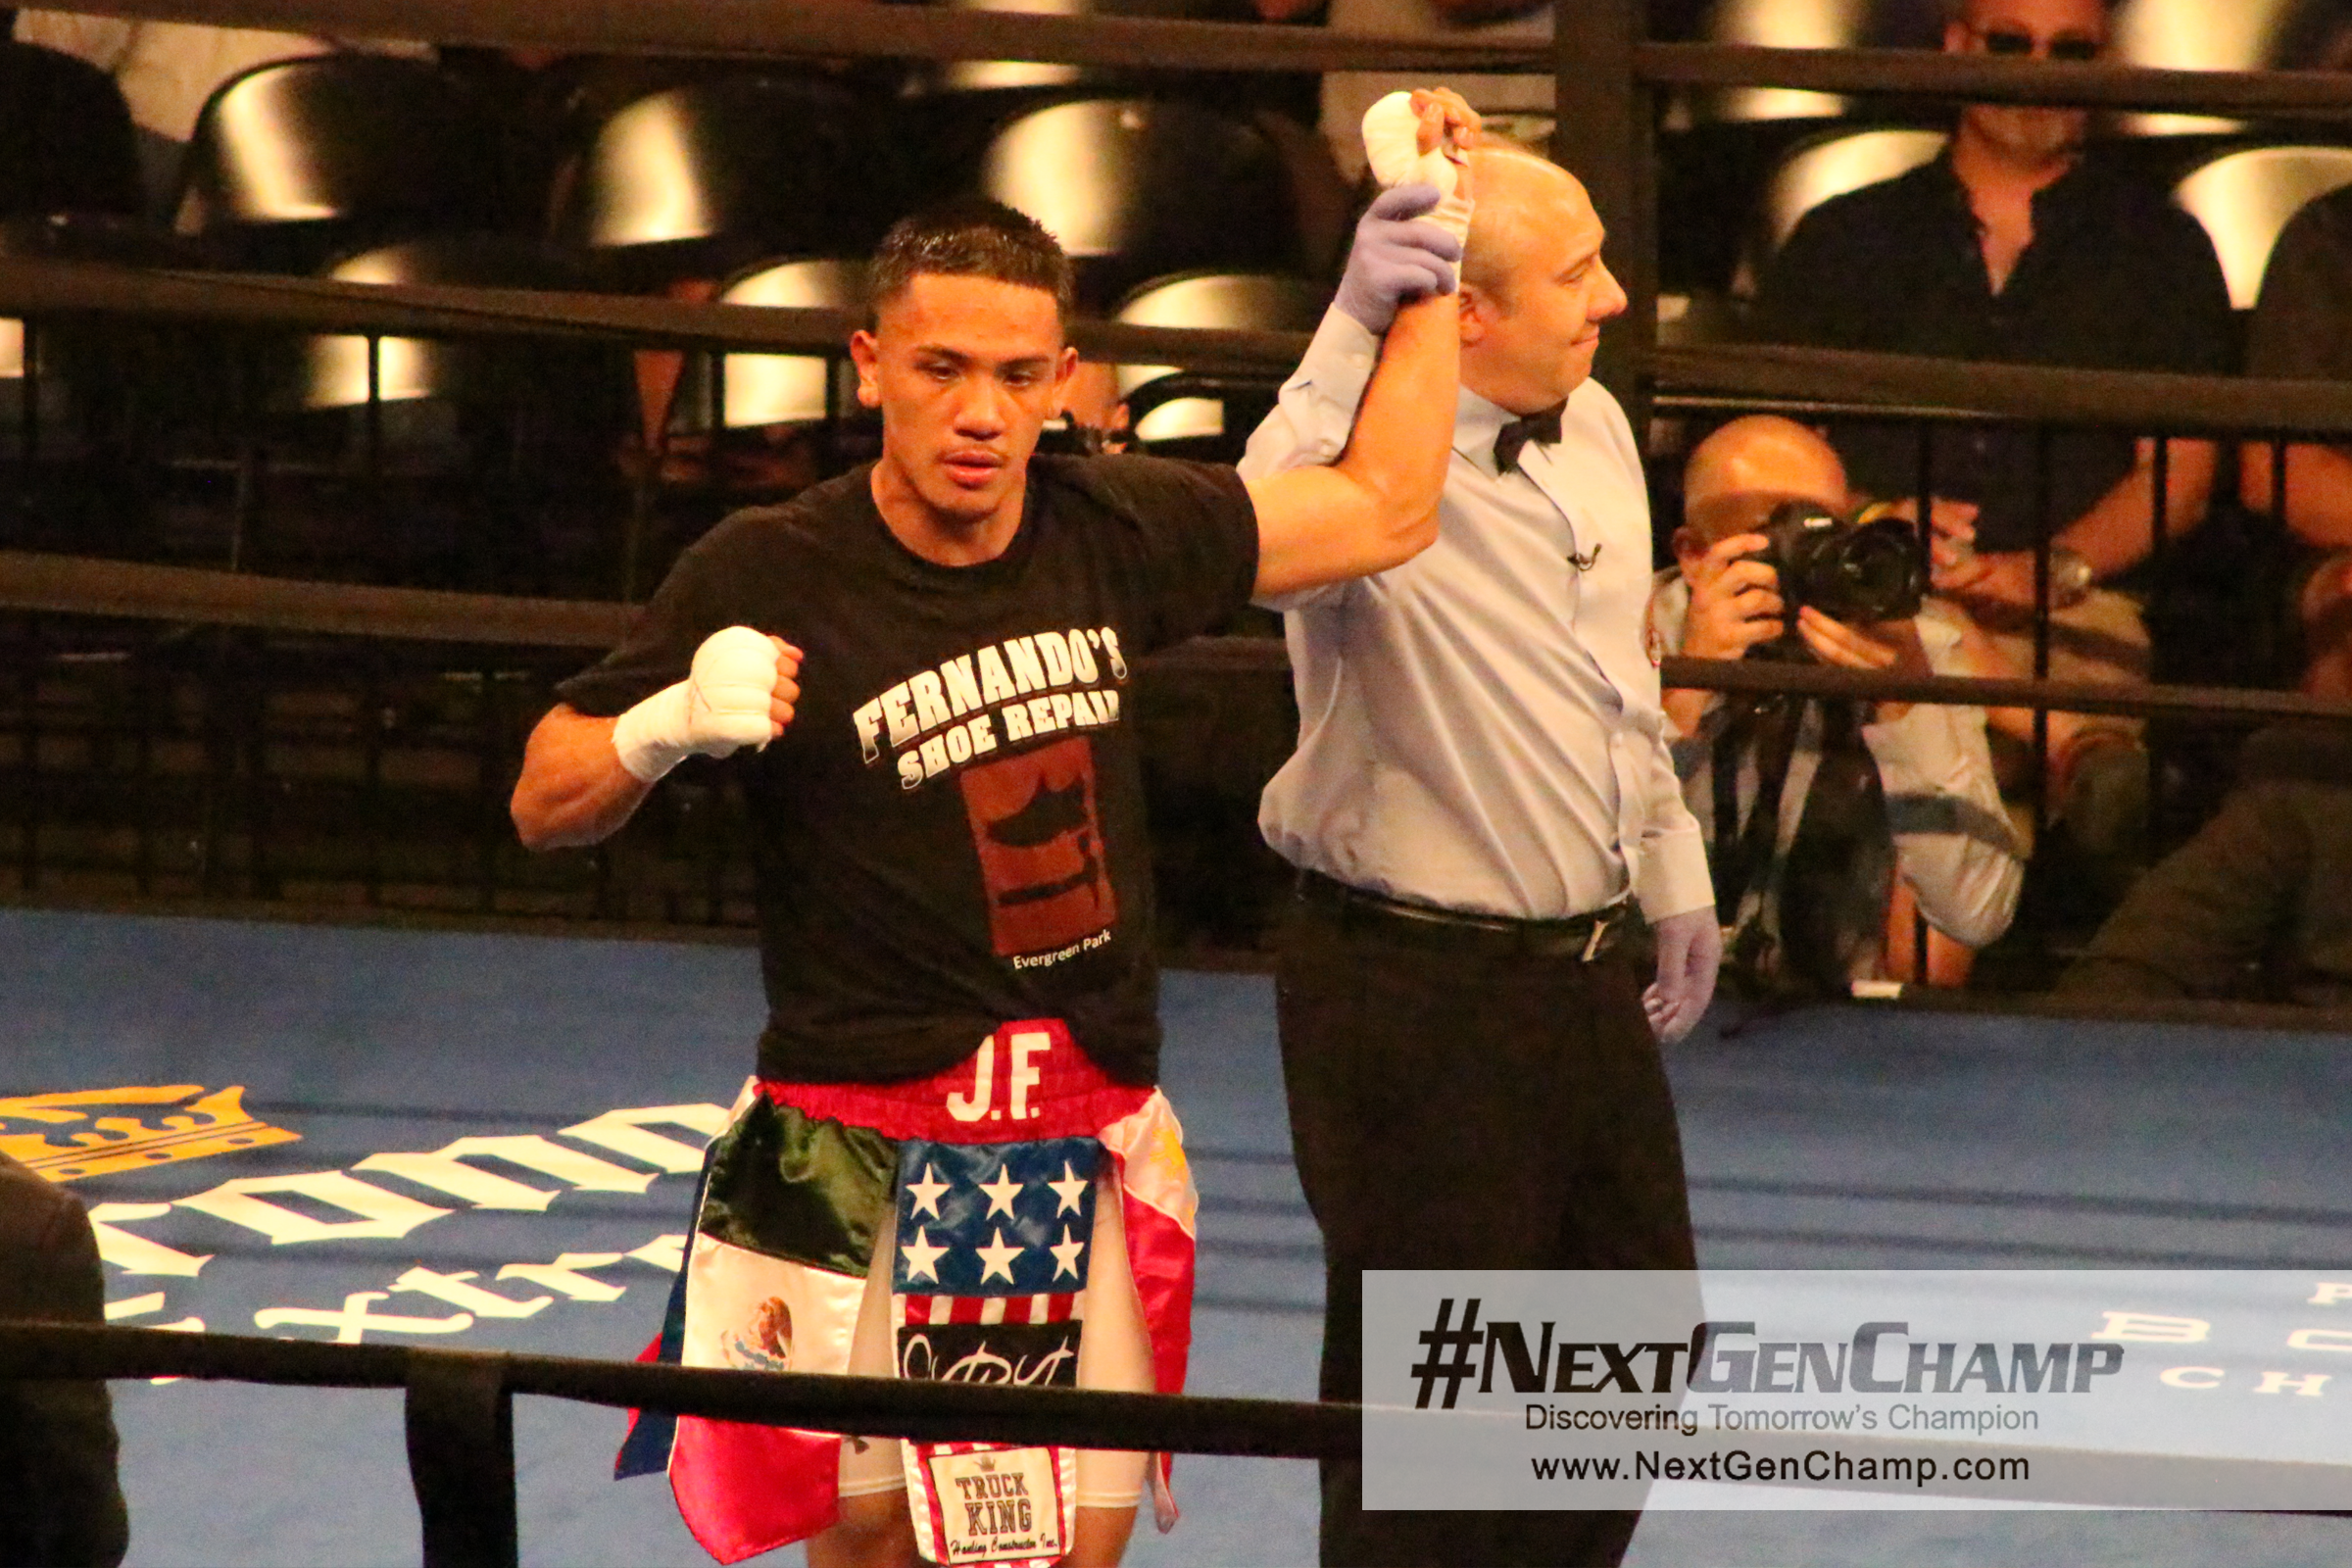 vs. Cameron Kreal, from #PBConNBC in Chicago on June 18th